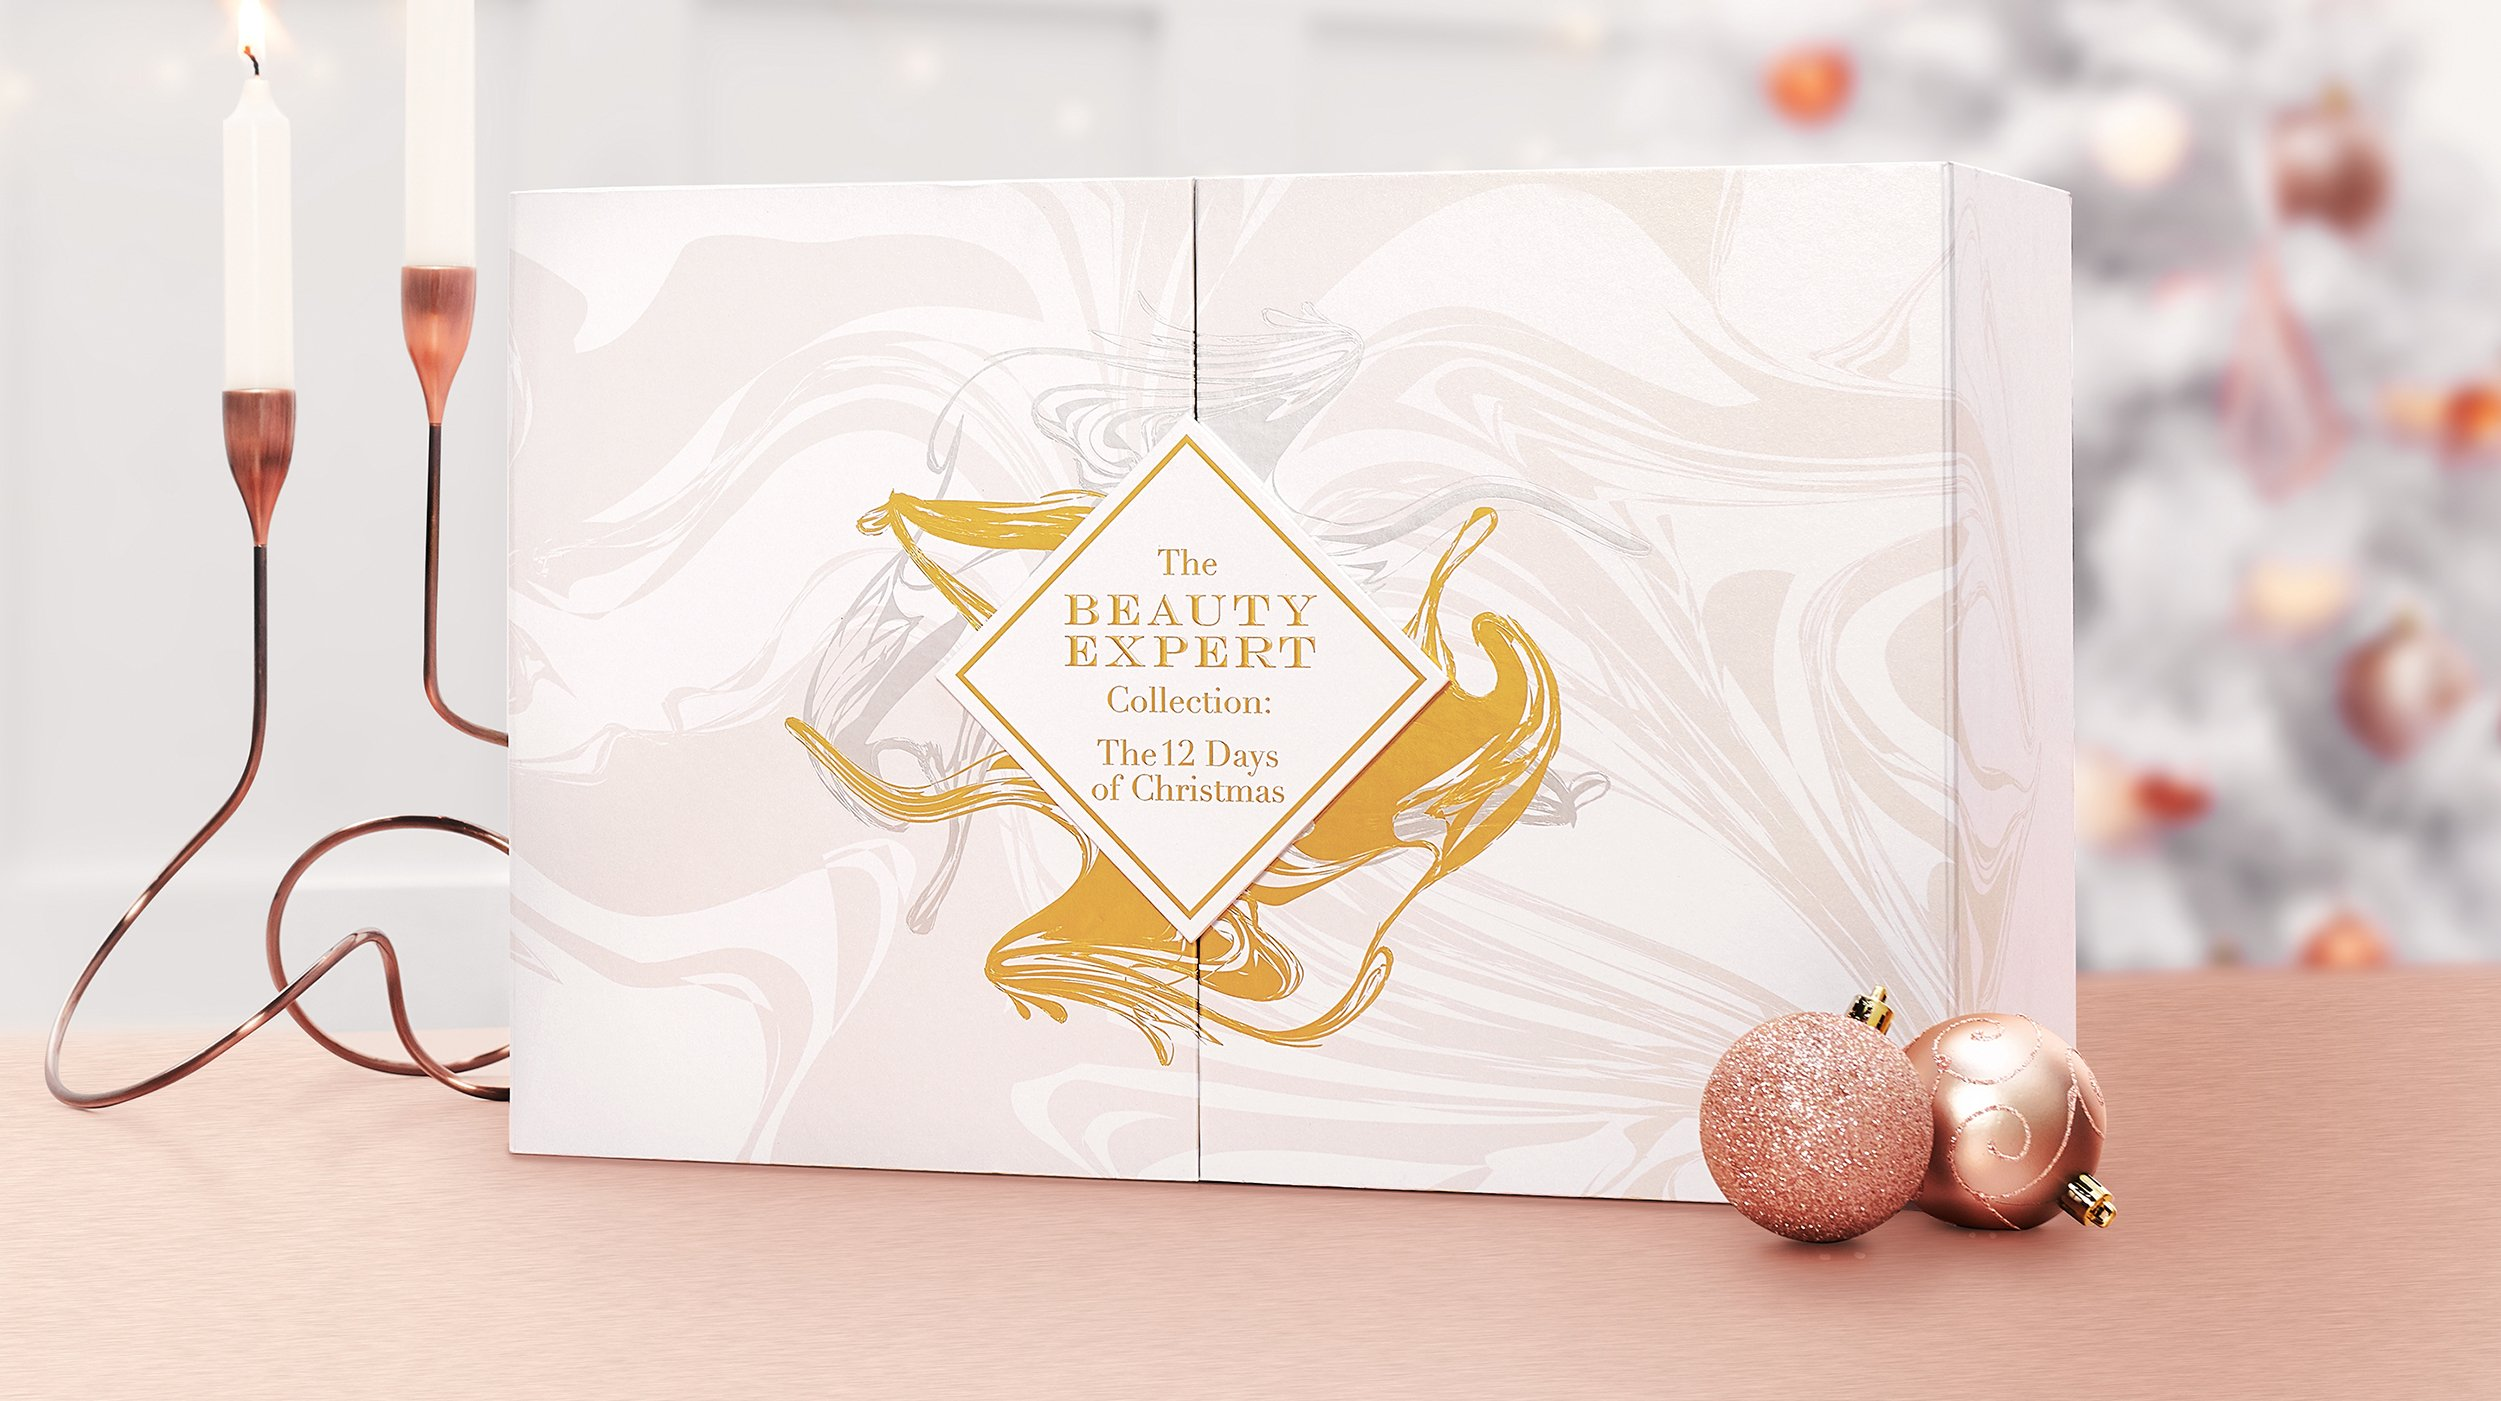 Discover The Beauty Expert Collection: The 12 Days of Christmas 2019